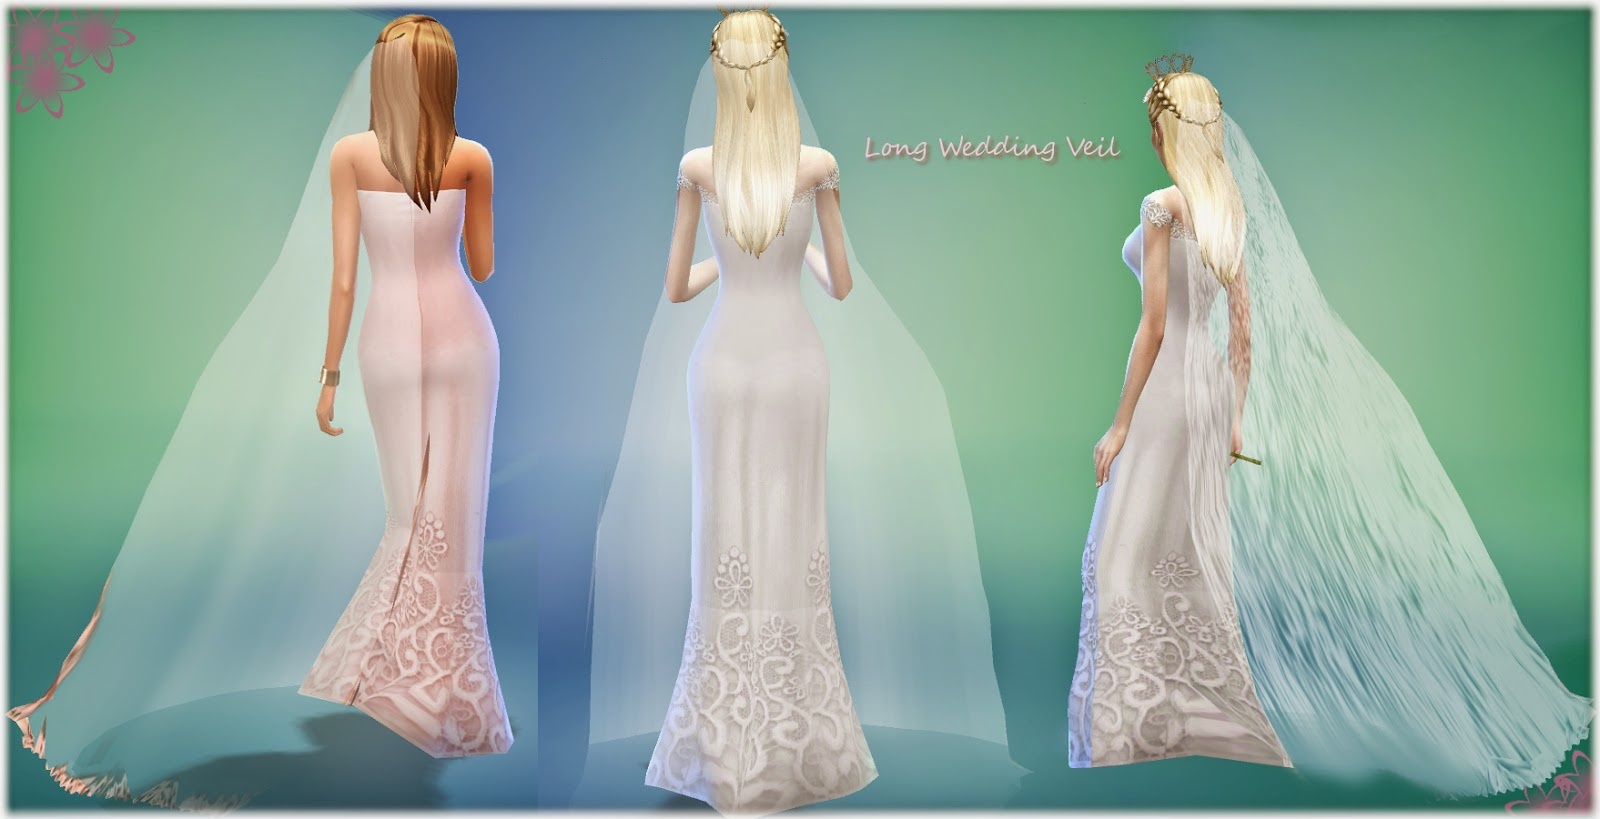 Long Wedding Veil by Alin22